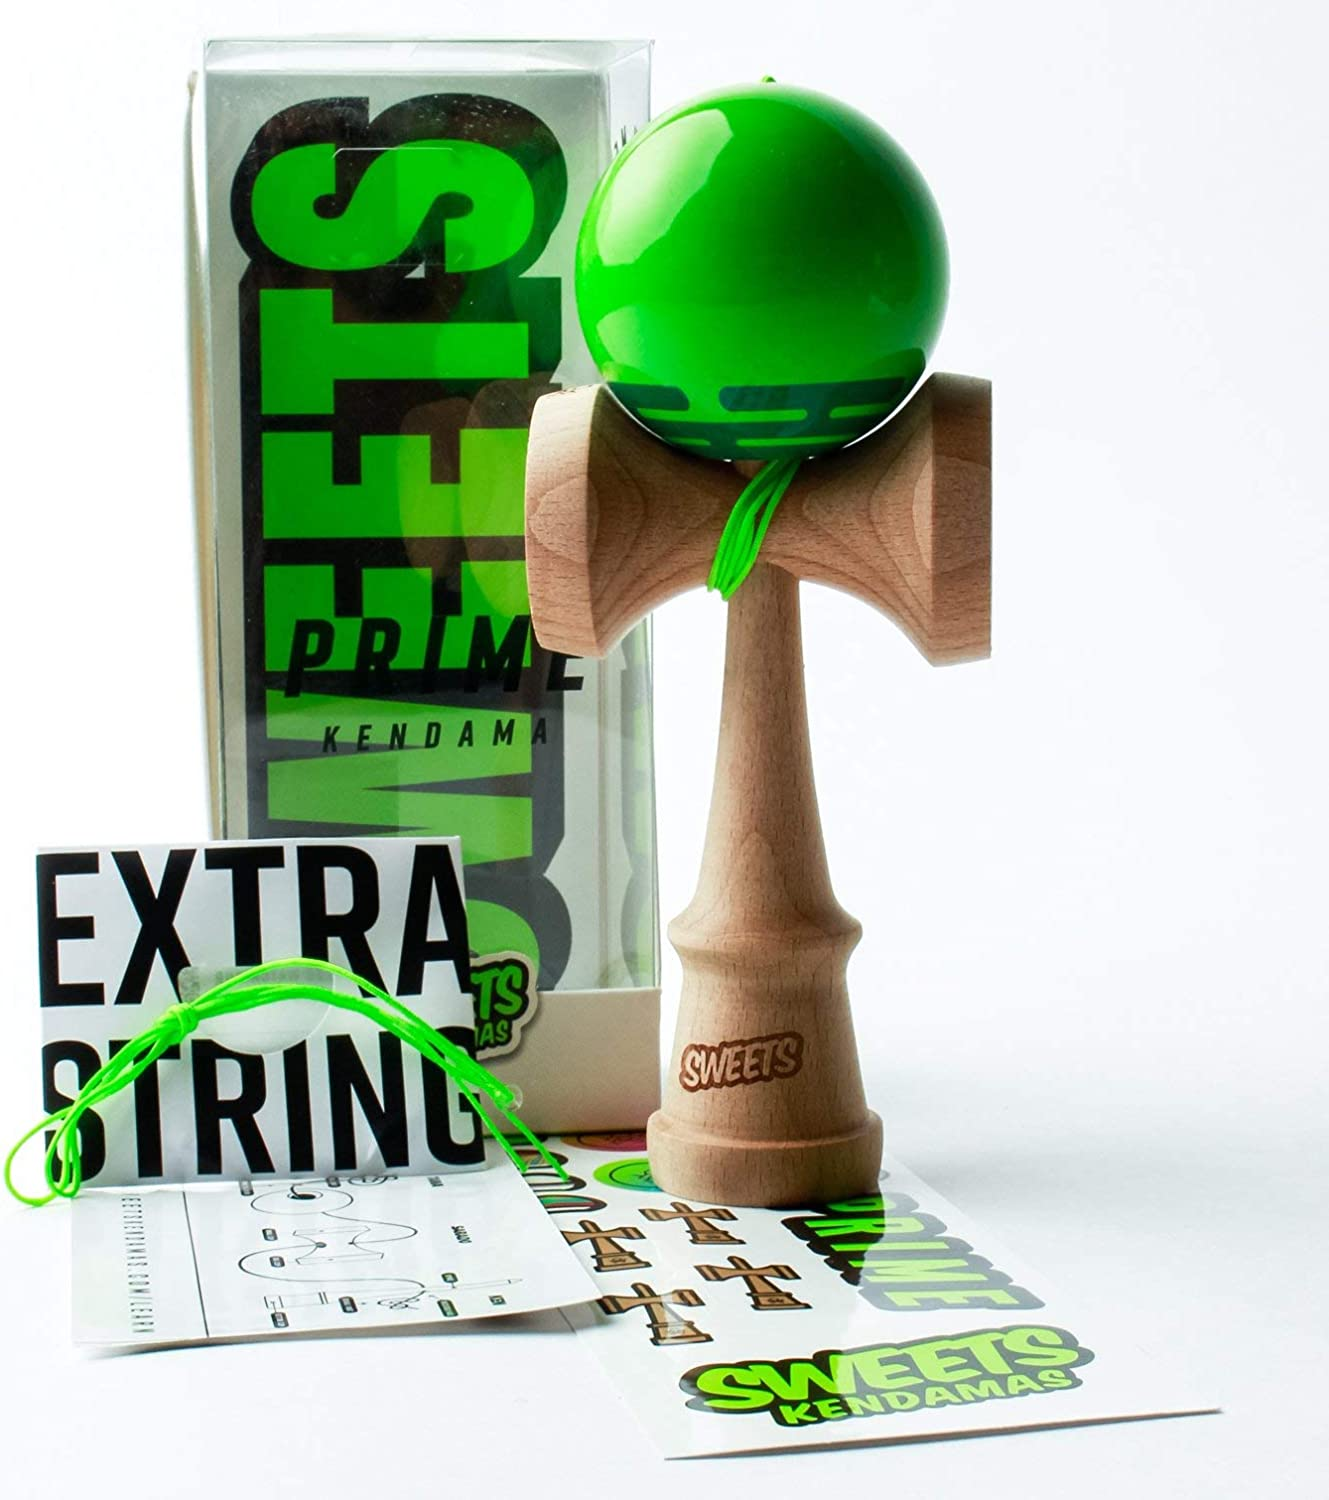 Sweets Kendamas Radar Prime Kendama - Sticky Paint, Perfect for Beginners, Extra String Accessory Gift Bundle (Green)